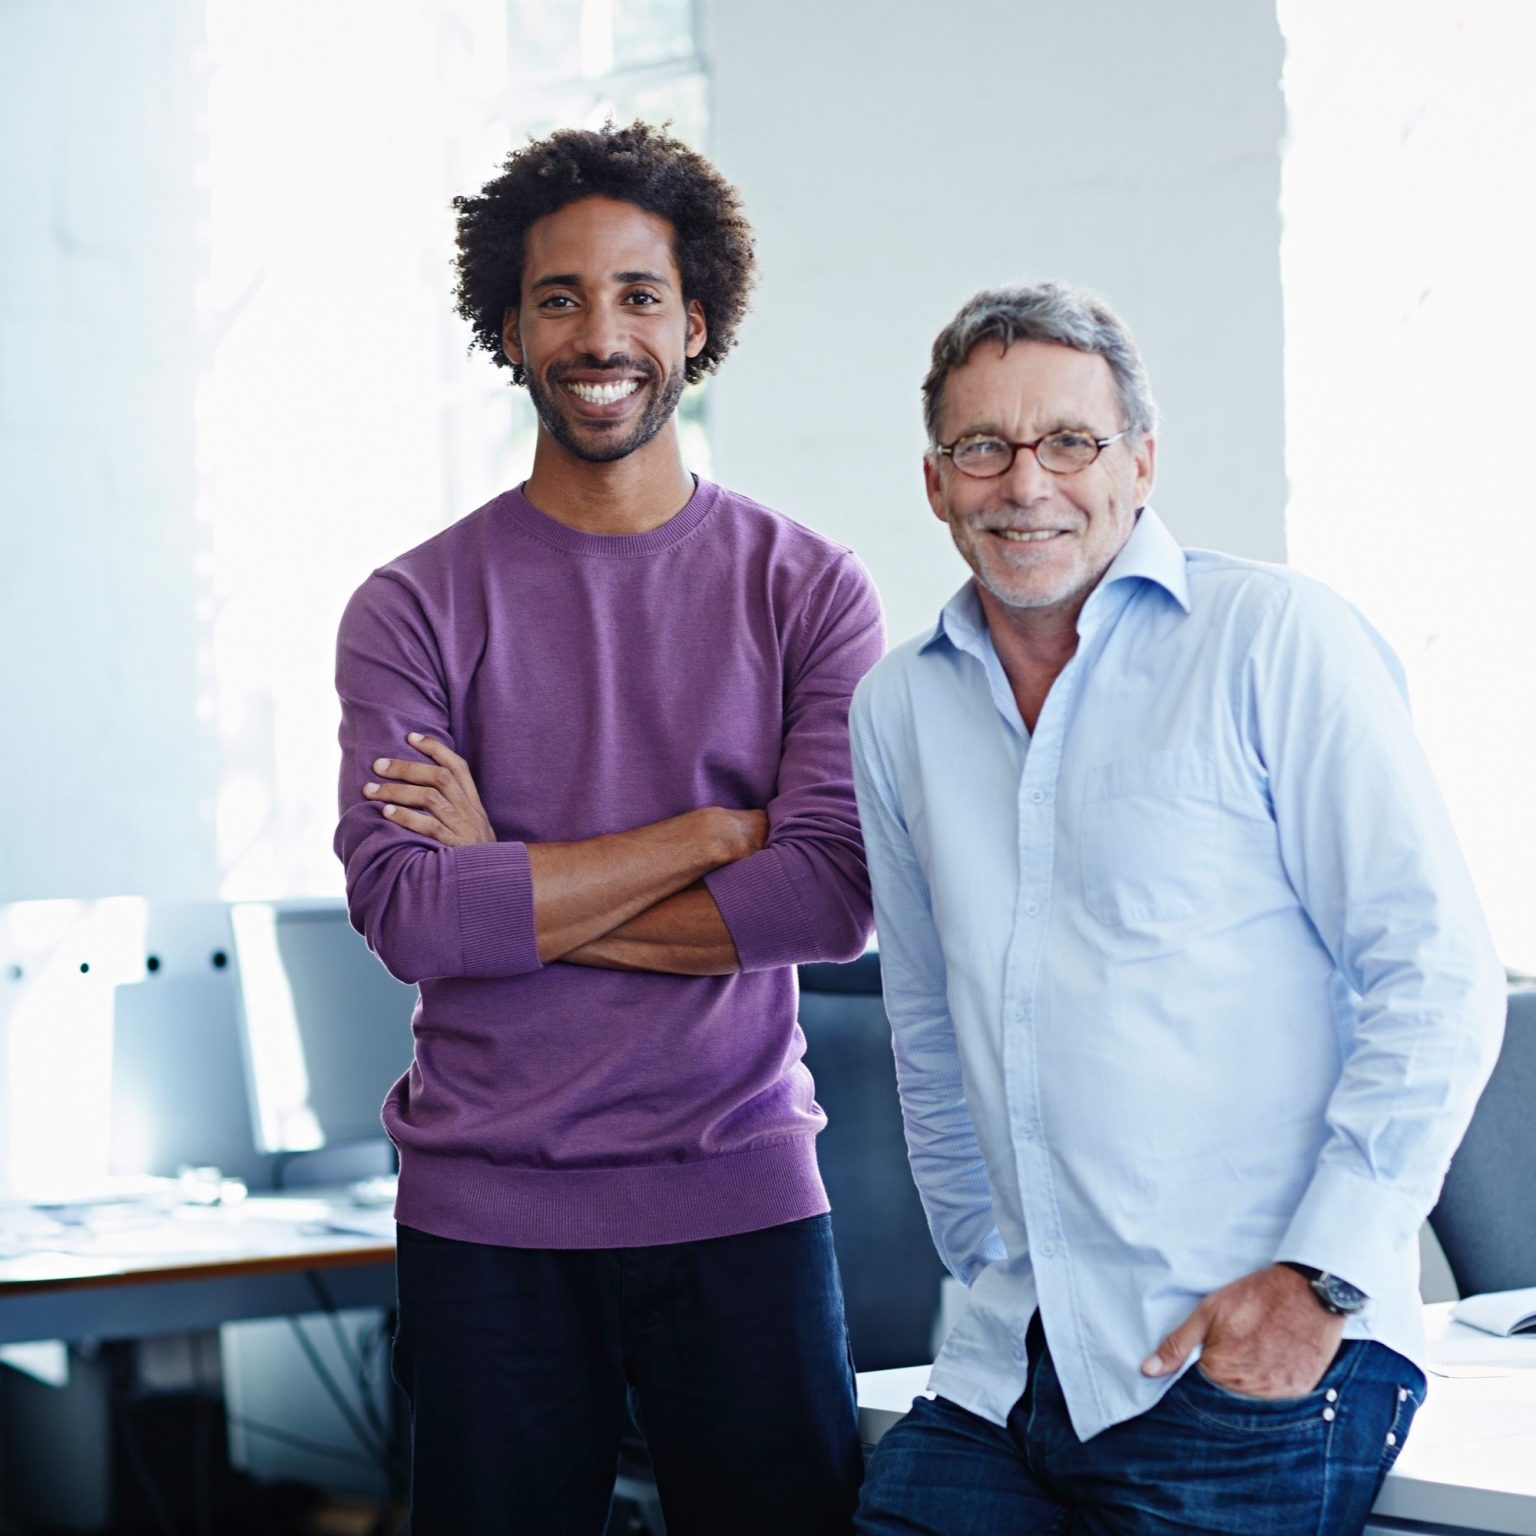 Contact page image, two men standing together in office